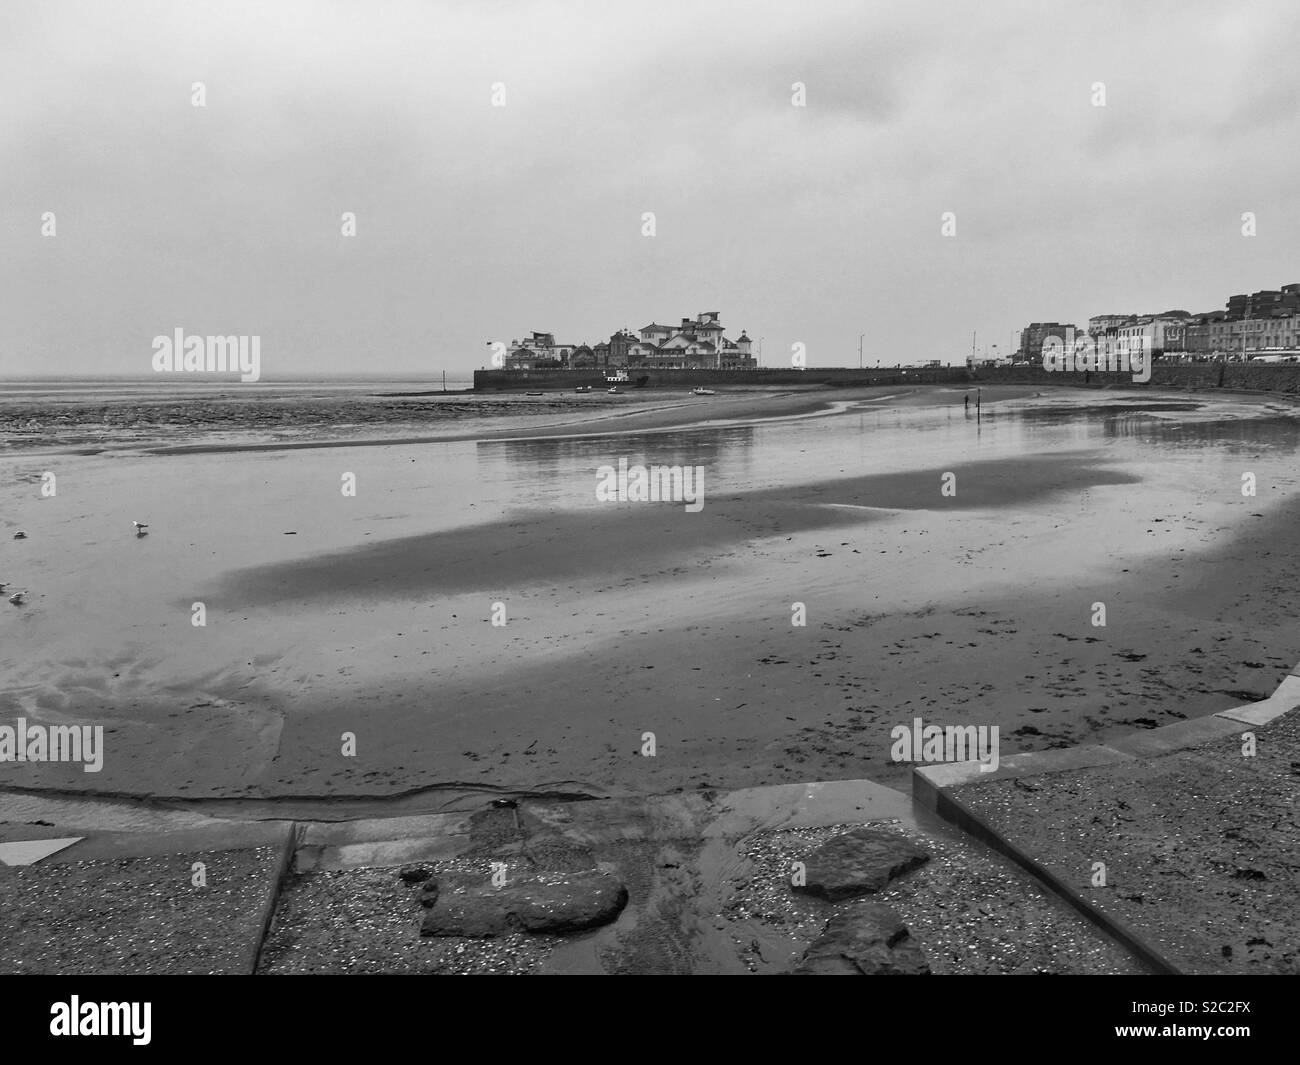 A wet, windy, and gloomy day in Weston-super-Mare, UK as the edge of Storm Callum passes over the town - Stock Image